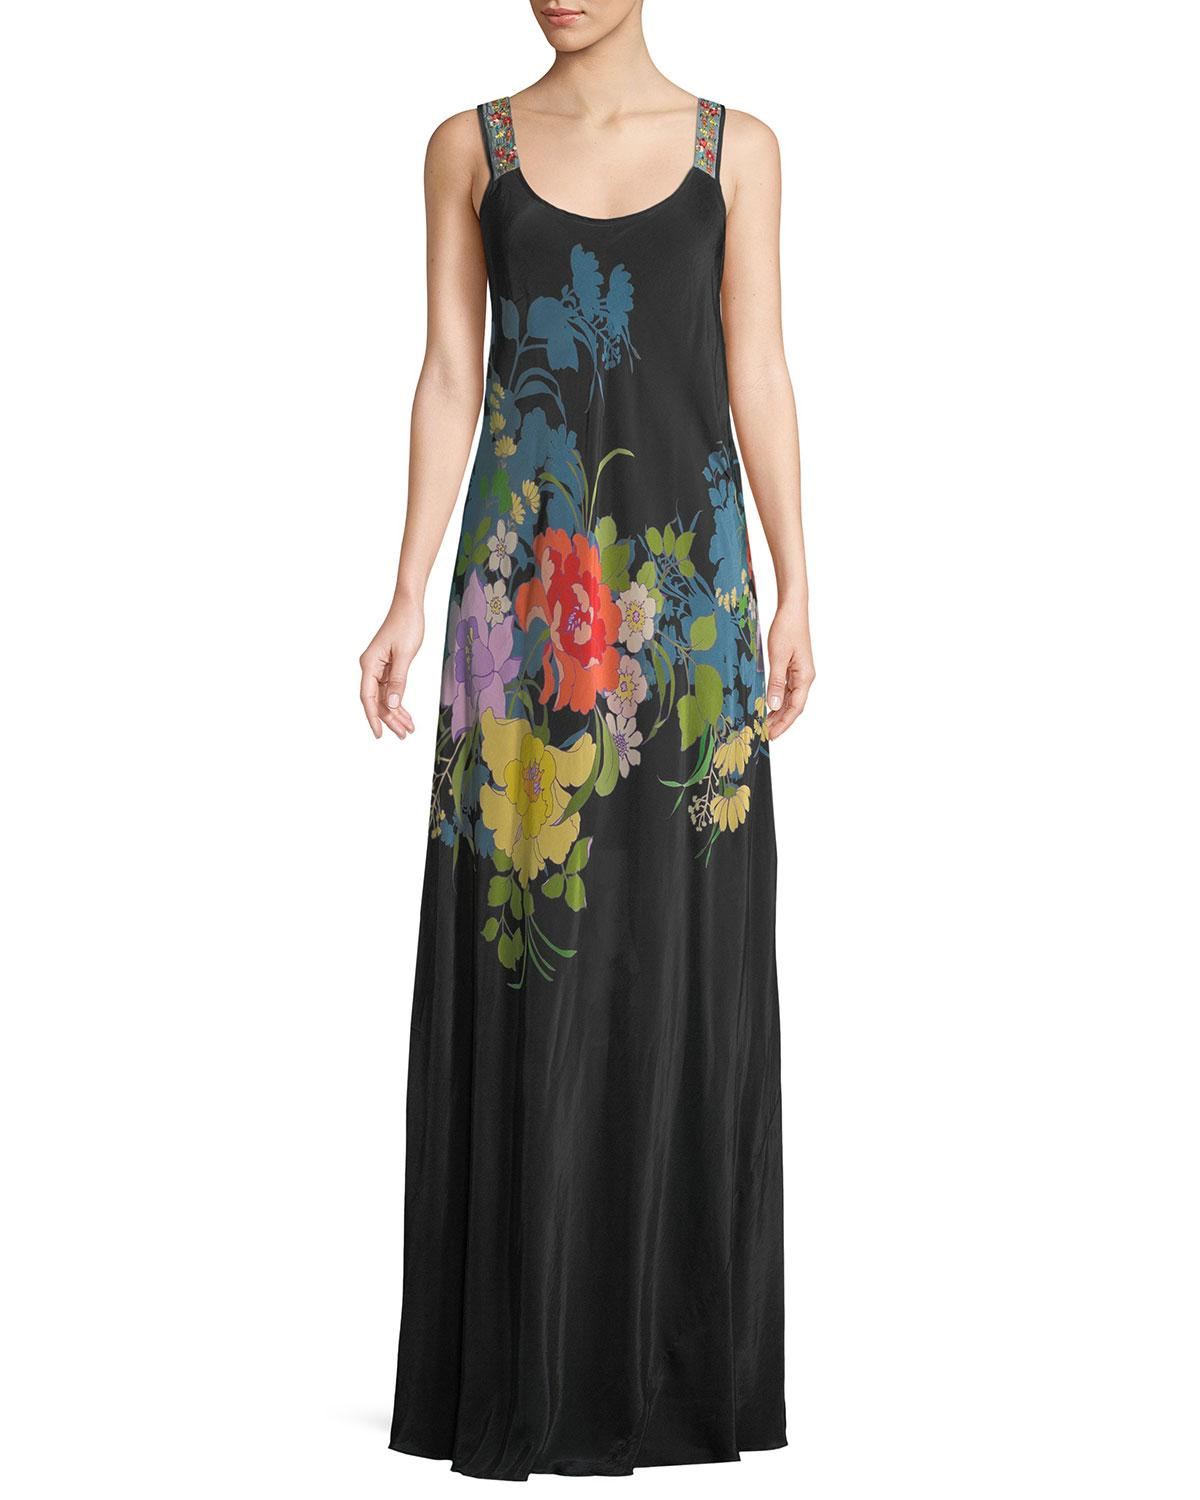 Johnny Was Fusion Sleeveless Floral-print Maxi Dress In Multi Black